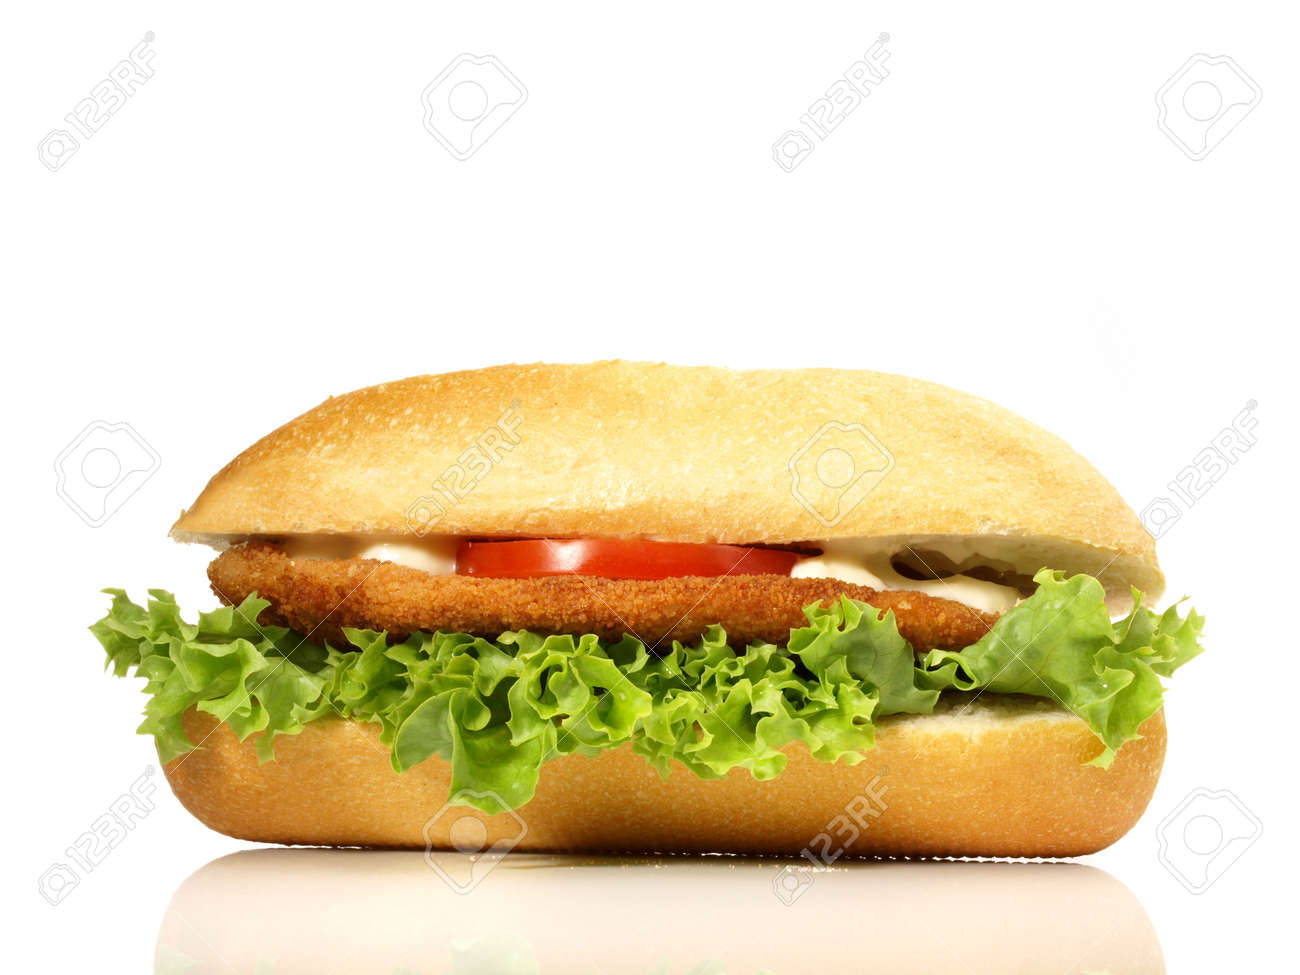 Chicken schnitzel baguette isolated on white background - 165849640